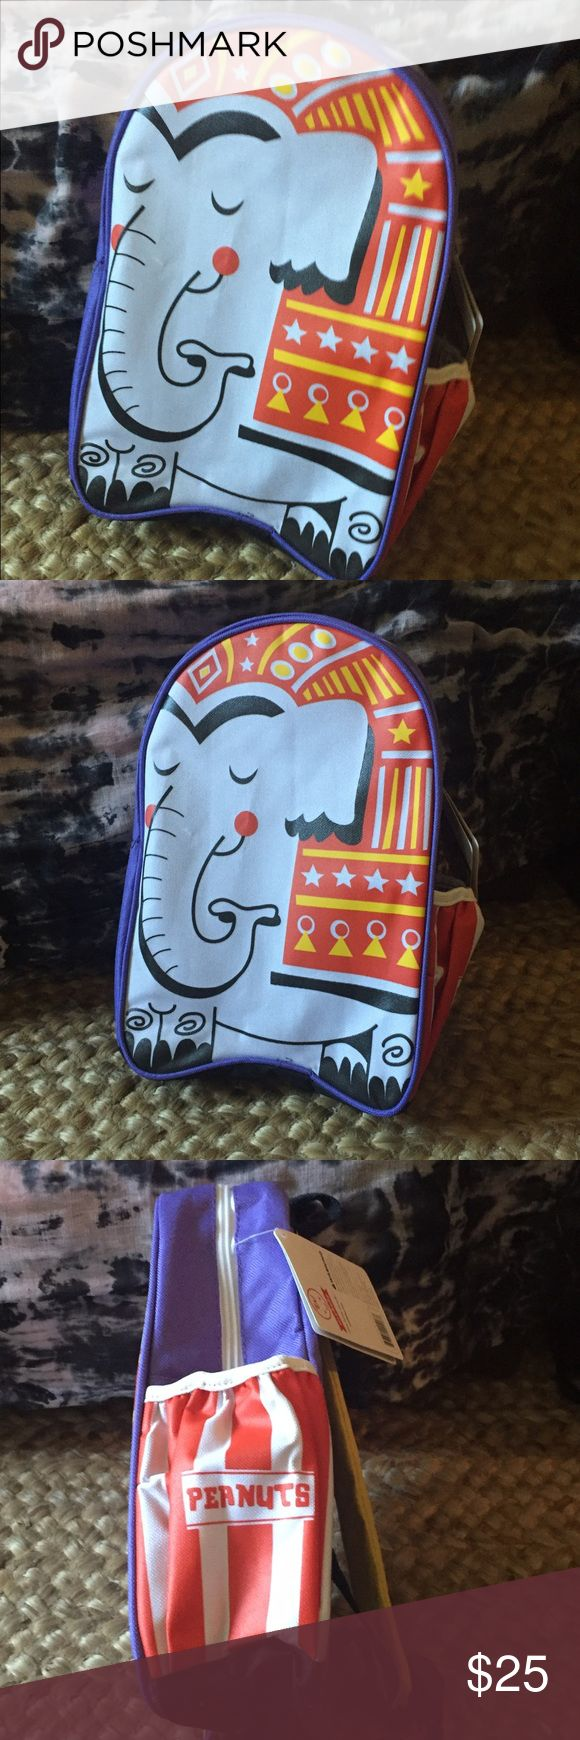 """Kids Canvas Elephant Backpack 12"""" x 9"""" NWT. Great for school and travel - made of a durable, woven polyester with a circus elephant design. Has a water bottle pocket, padded and adjustable straps and a secret nameplate inside. New with tags. Accessories Bags"""